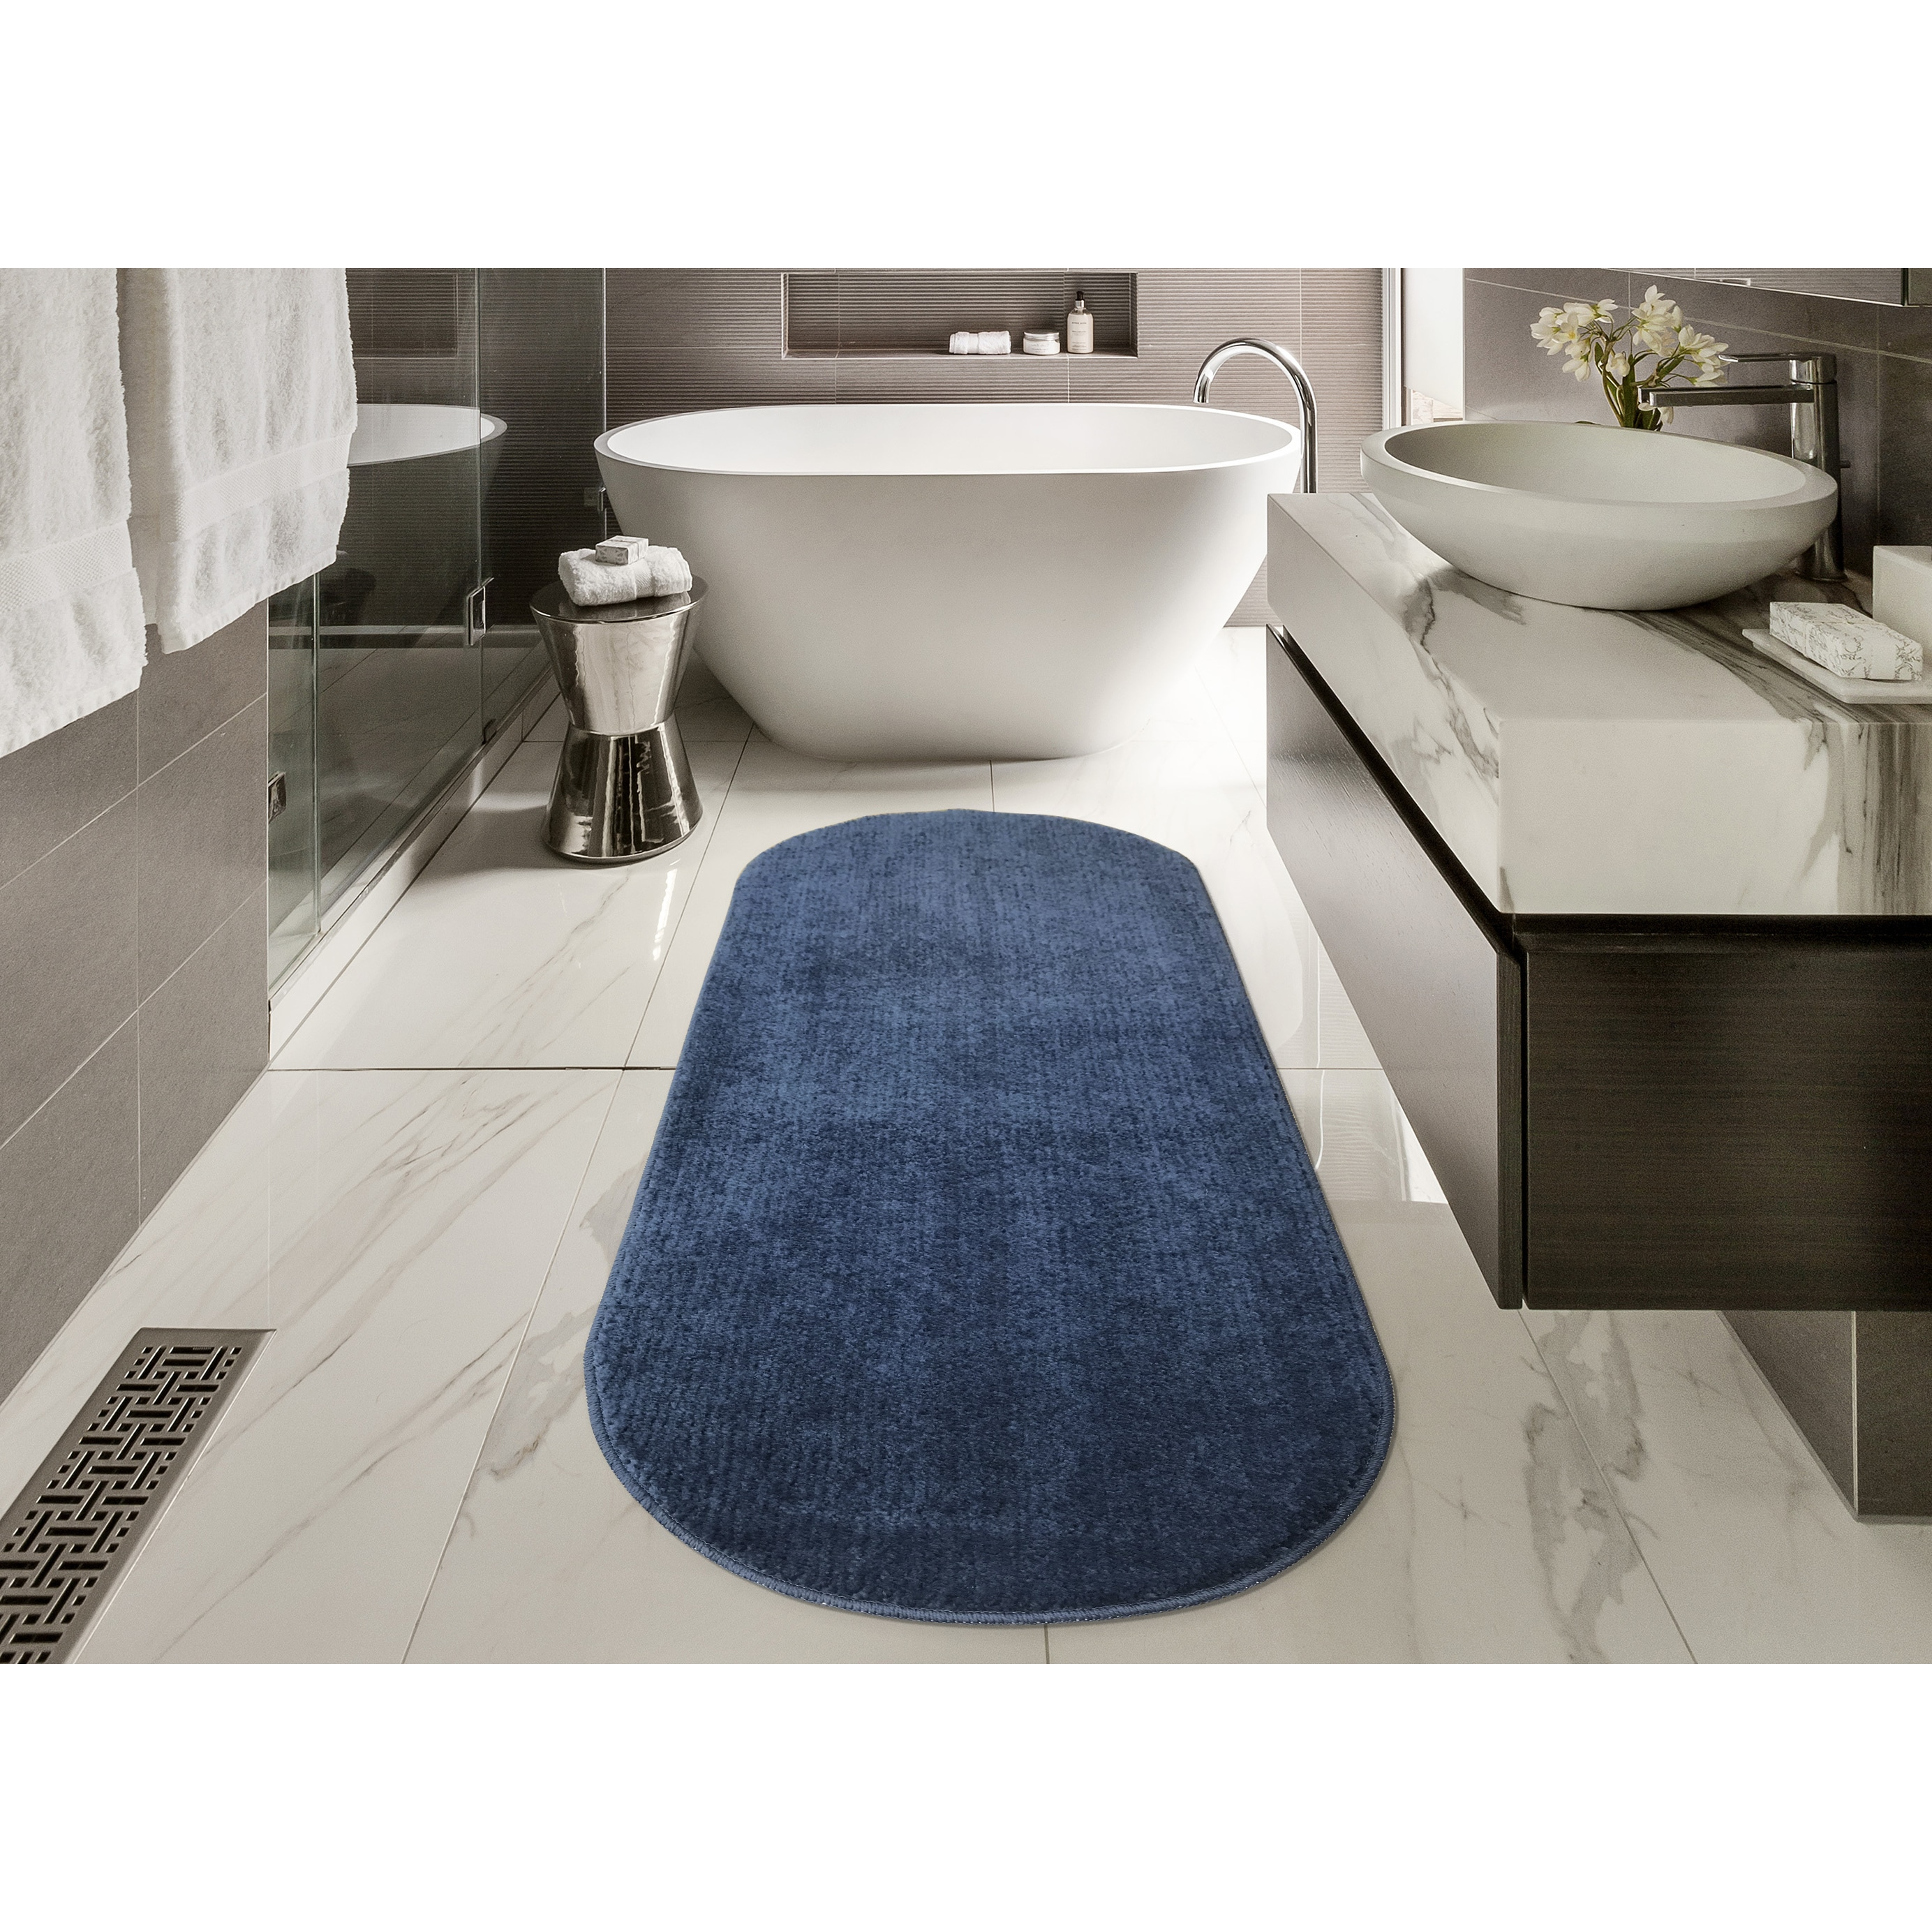 Shop Ottomanson Softy Collection Solid Color Kitchen/Bathroom Oval ...